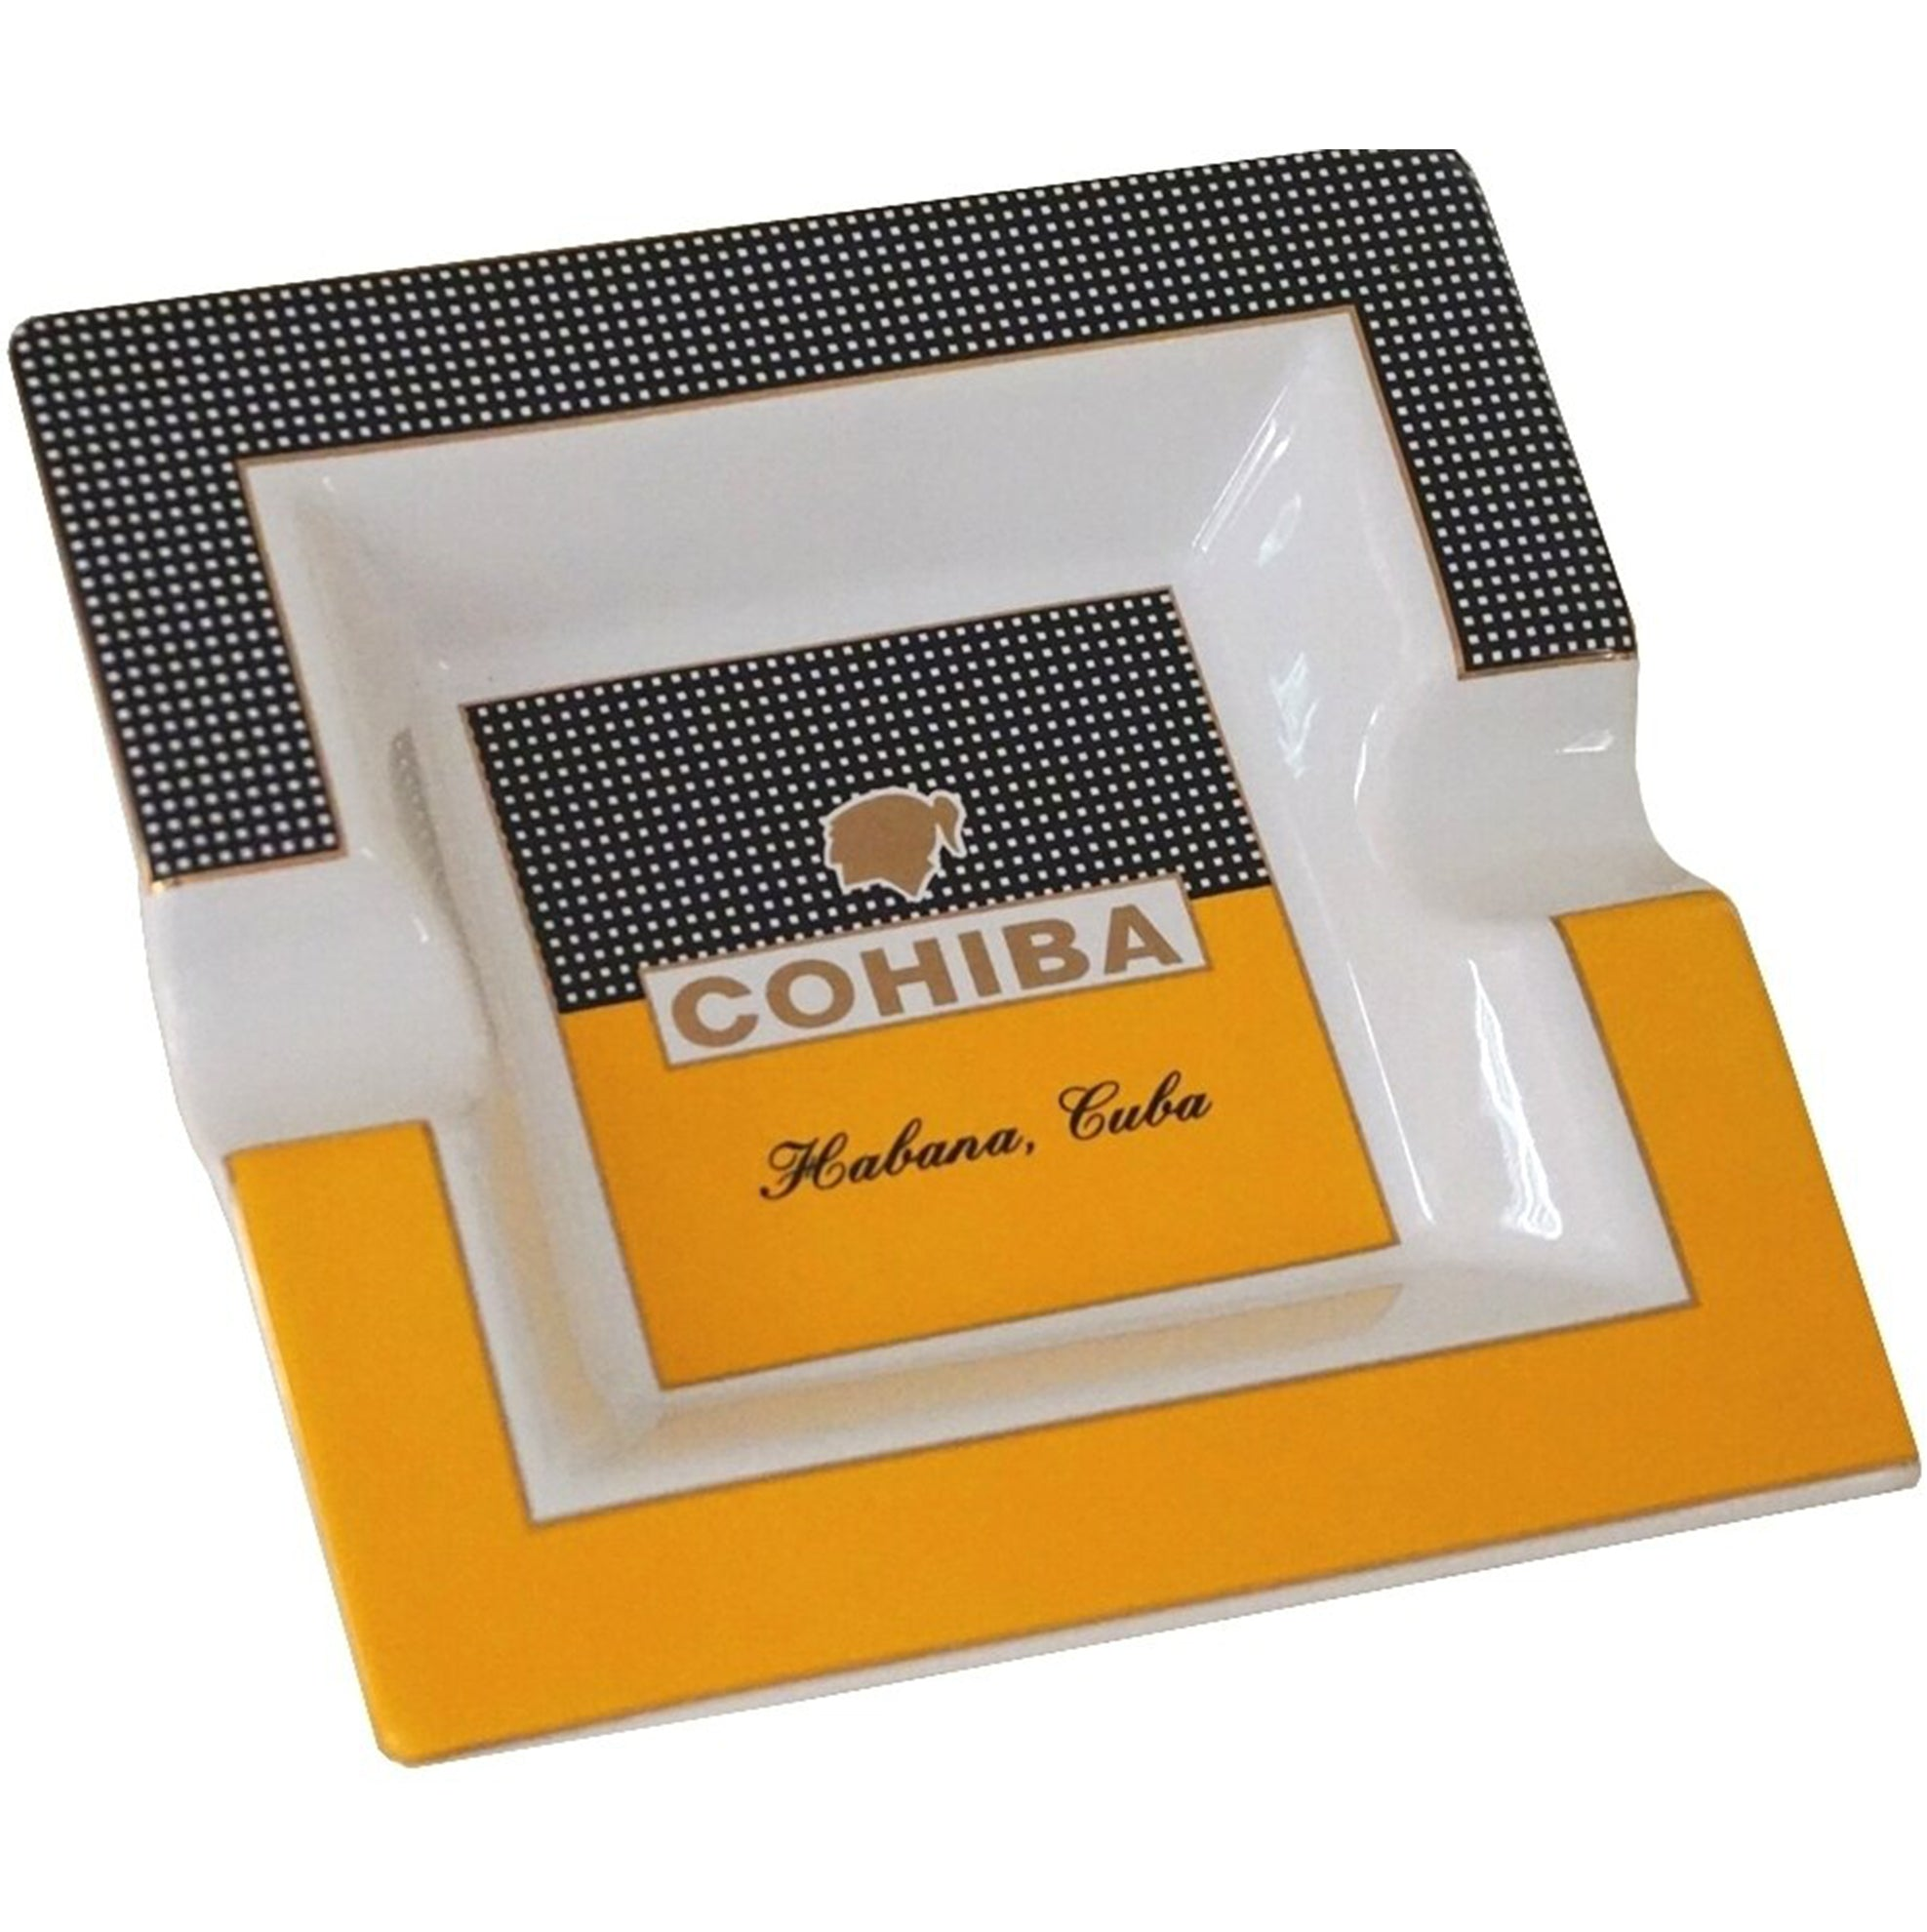 NEW Ashtray COHIBA SQUARE with Two Wide Grooves